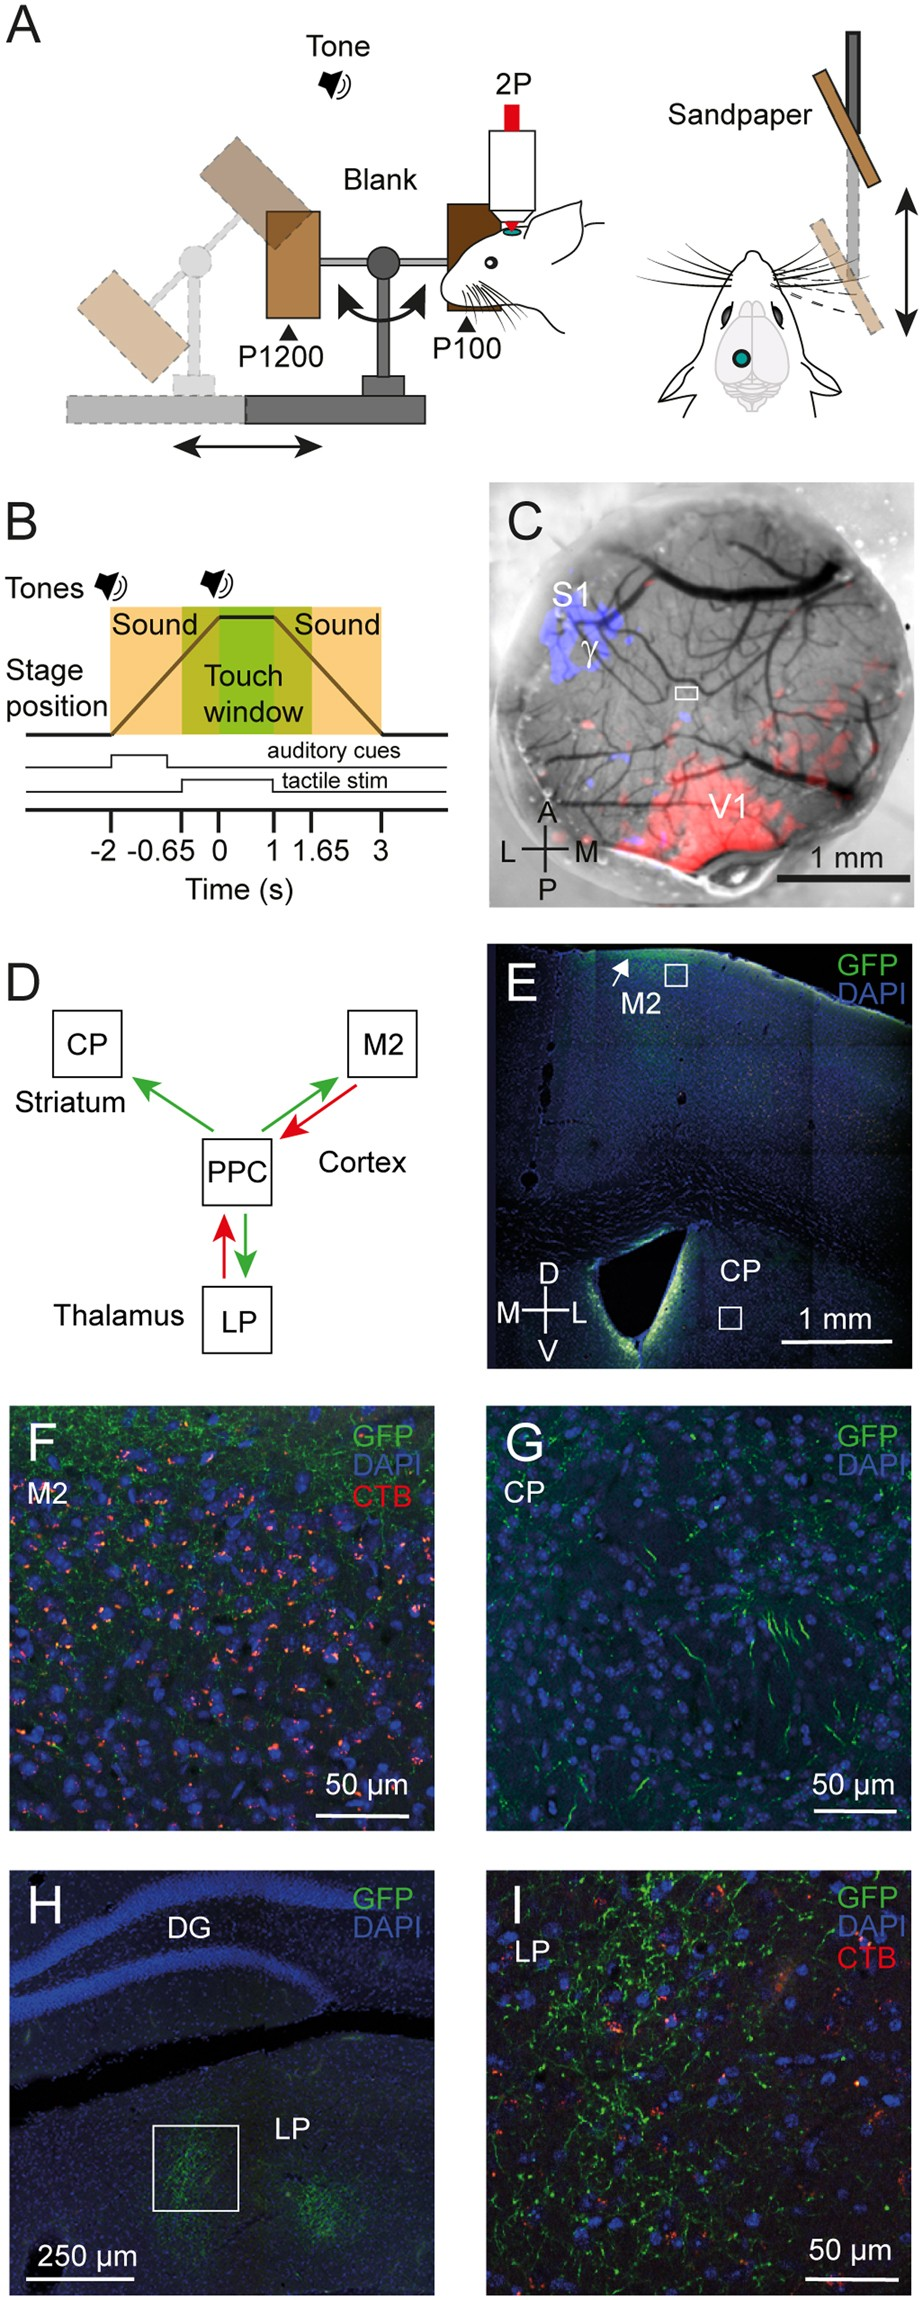 Sensory Representation Of An Auditory Cued Tactile Stimulus In The To Build Usb Power Injector For External Hard Drives Circuit Diagram Posterior Parietal Cortex Mouse Scientific Reports